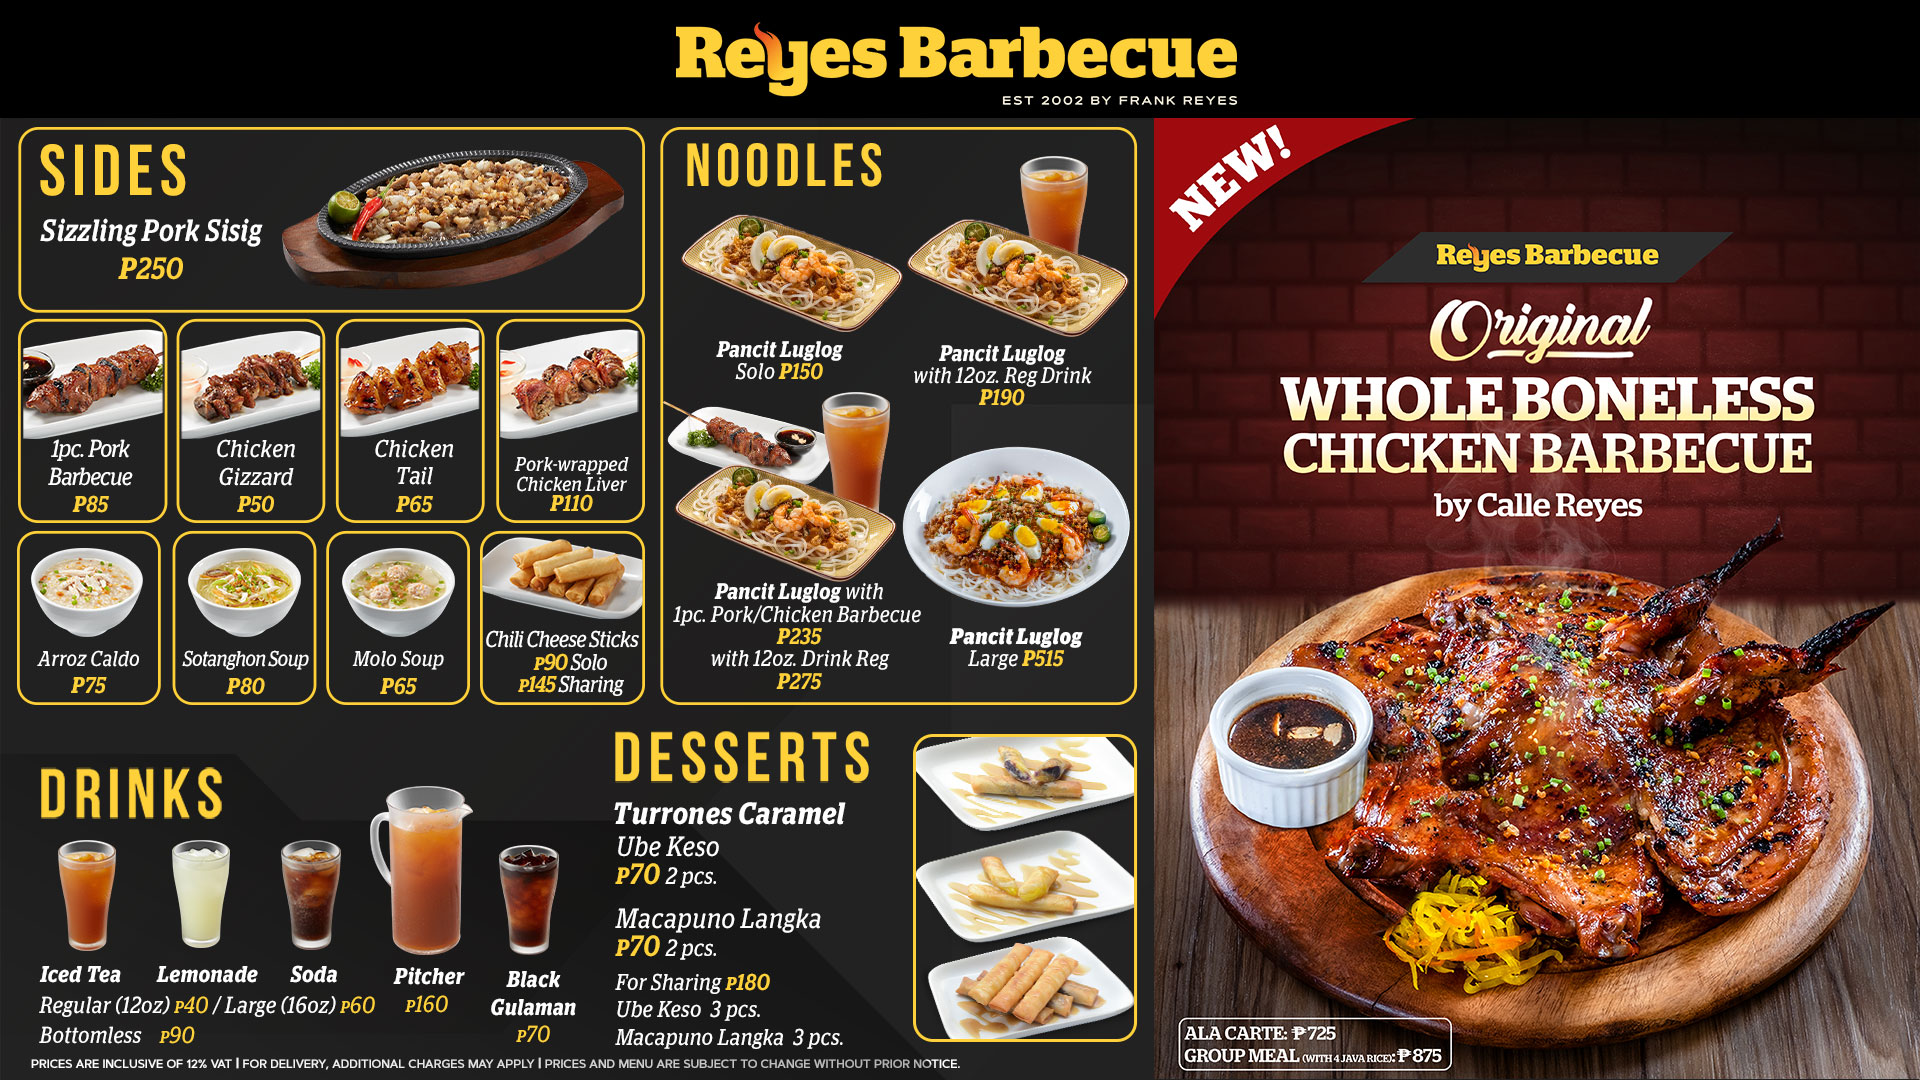 Reyes Barbecue Sides